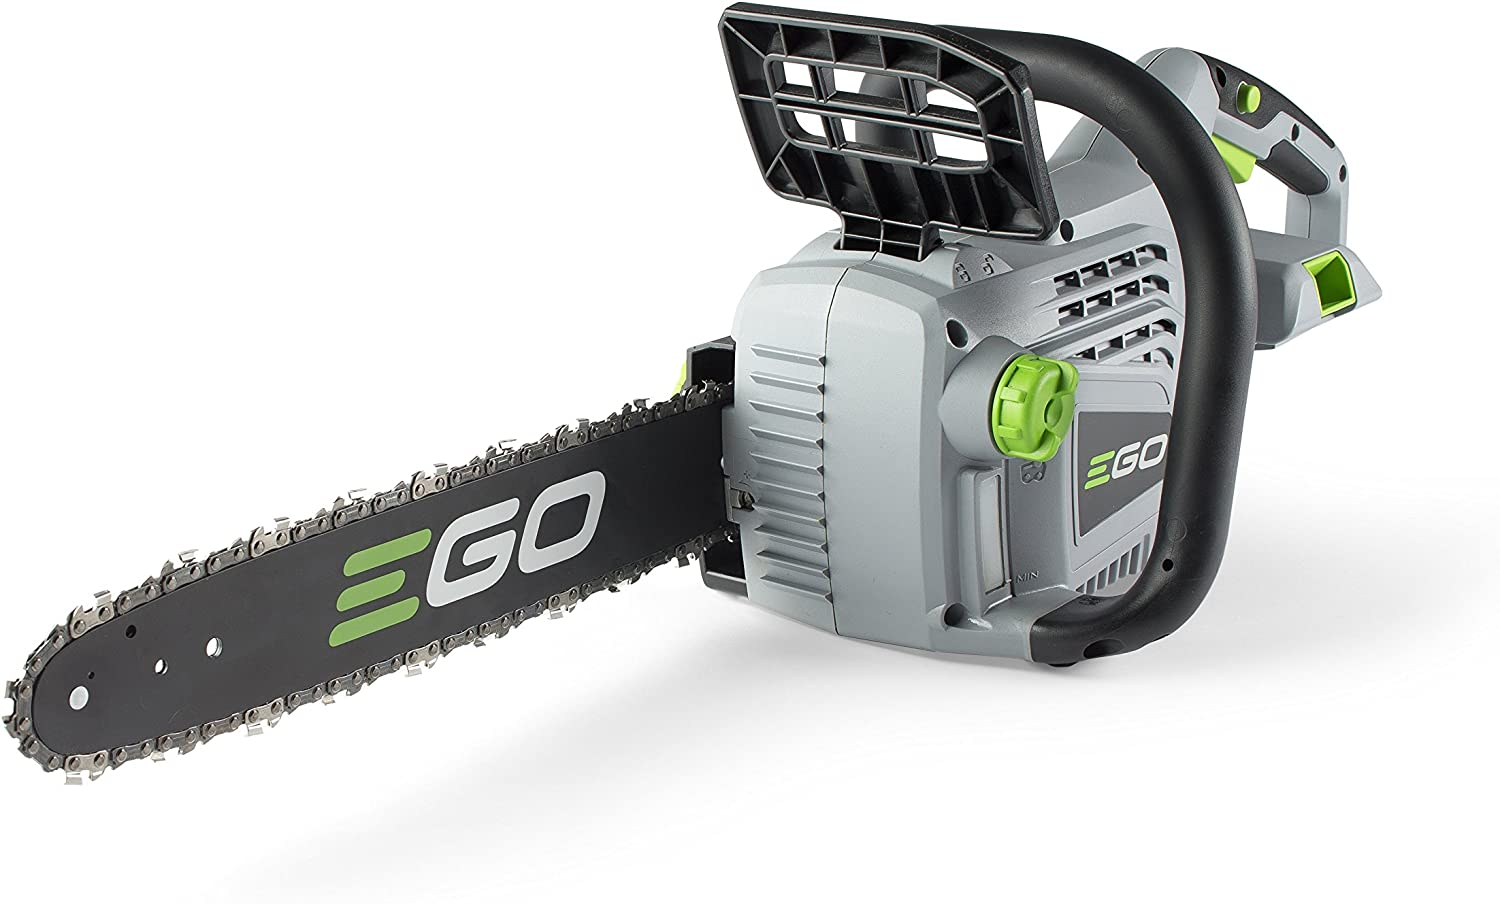 EGO Power CS1400 14-Inch 56-Volt Lithium-Ion Cordless Chainsaw – Battery and Charger Not Included